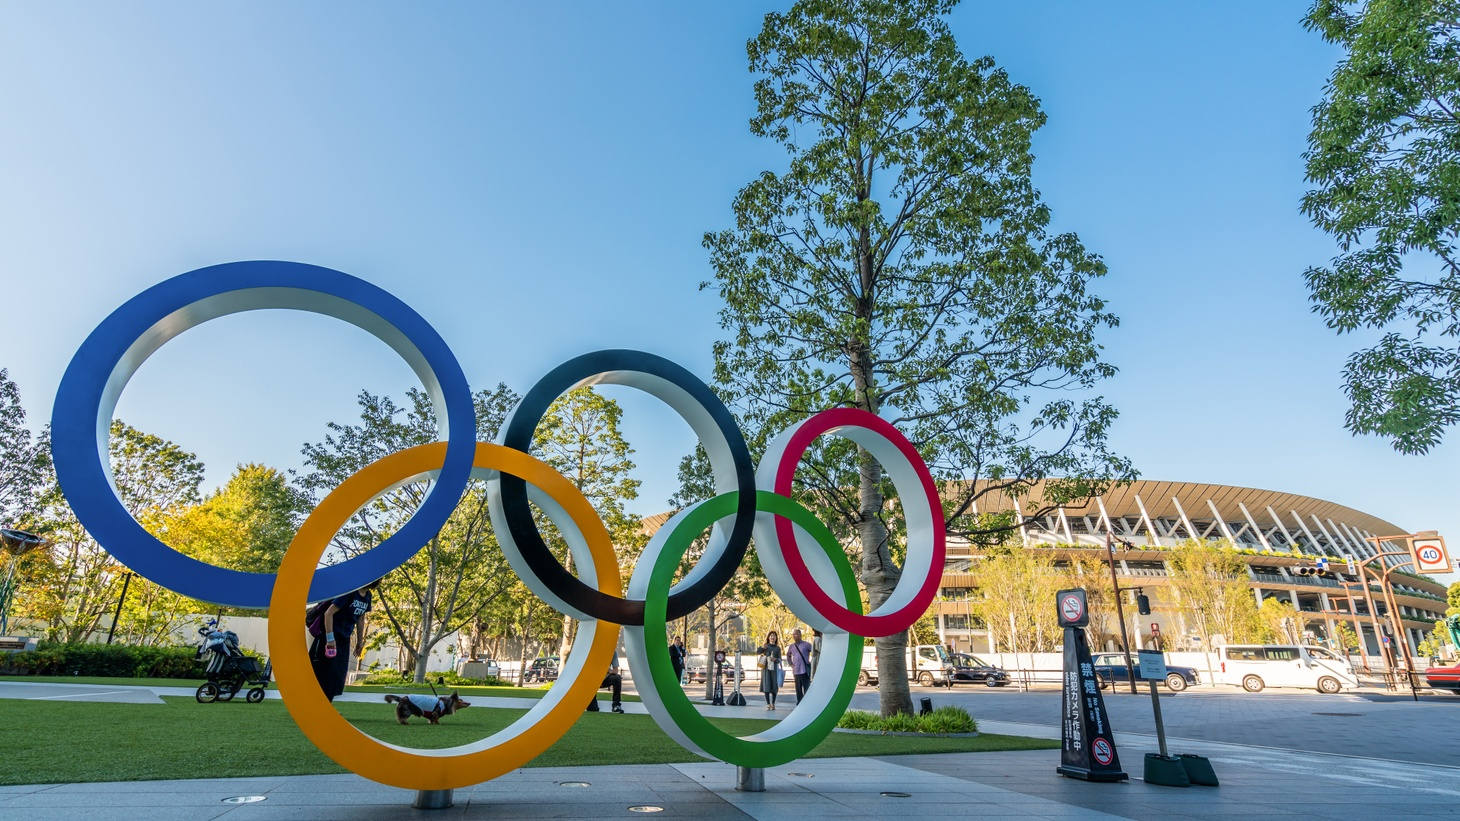 The 2020 Olympic Games in Tokyo were delayed a year due to the pandemic. The Olympics will begin July 23, but health officials in Japan have concerns because of the country's low vaccination rate.